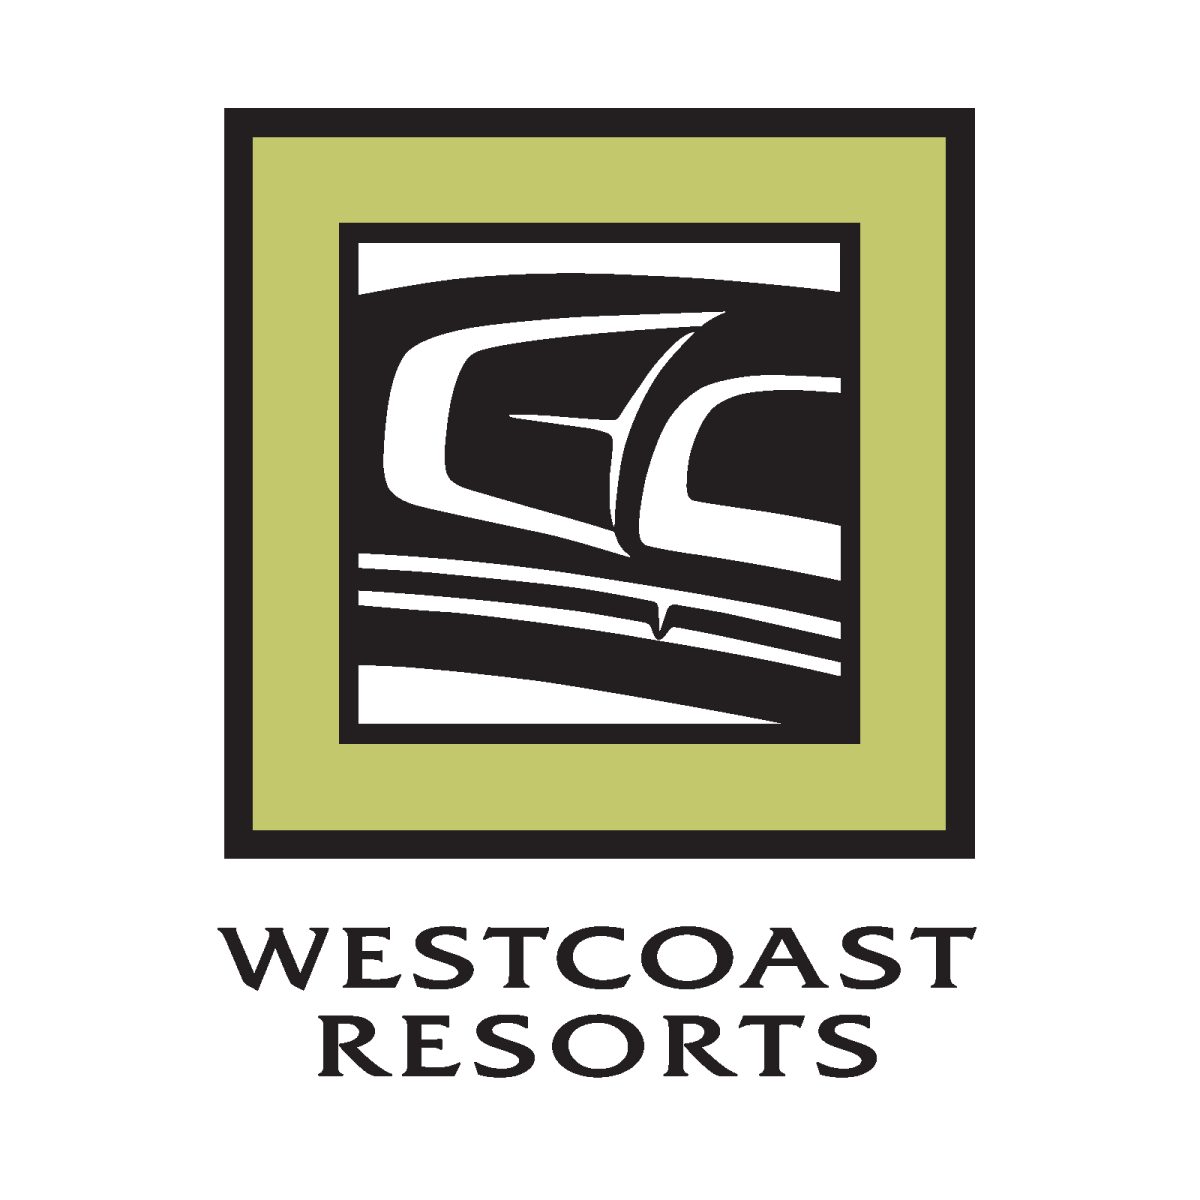 Westcoast Resorts